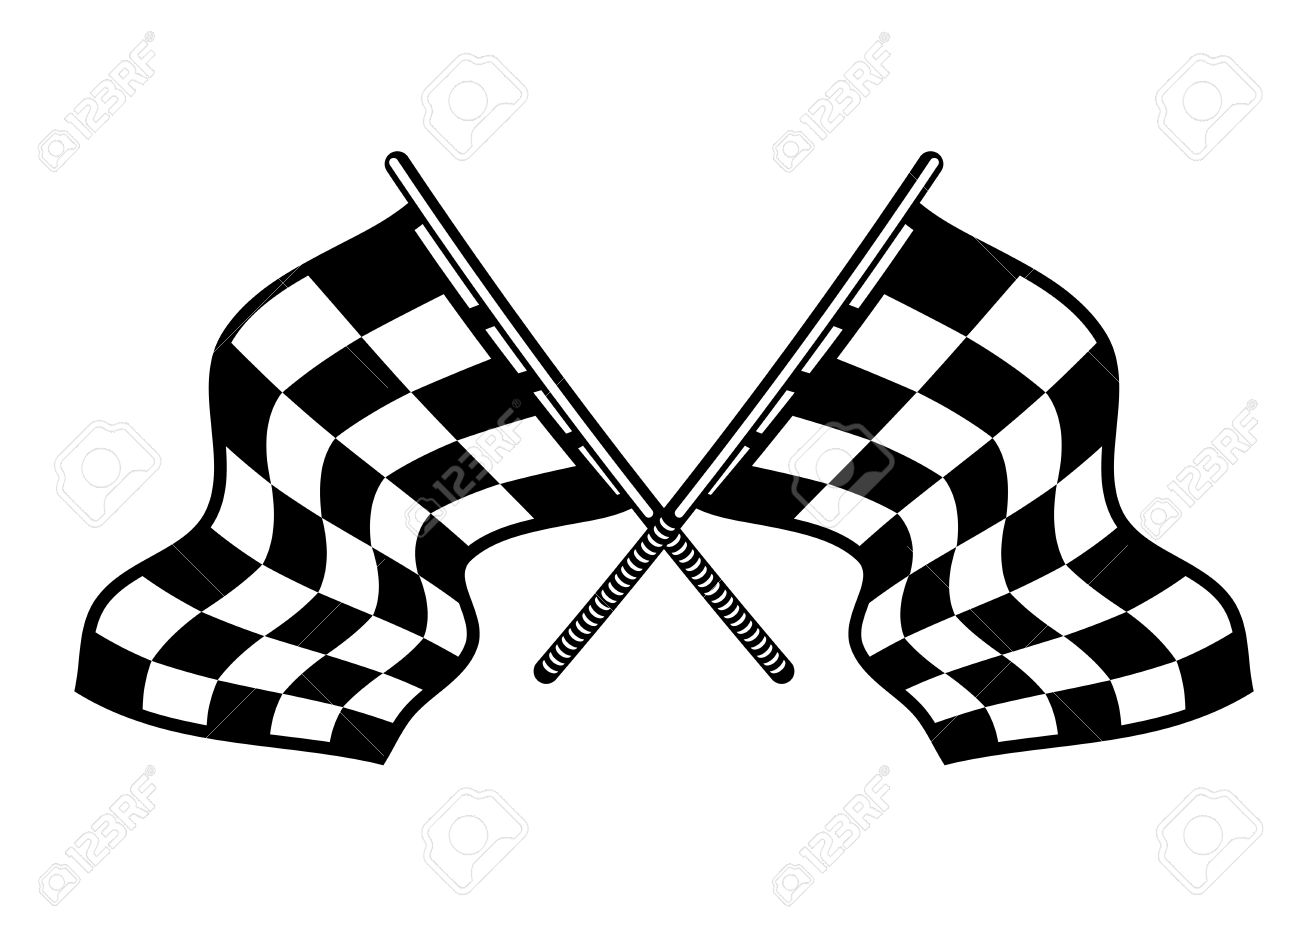 Crossed Motor Sport Flags With Their Distinctive Black And White.